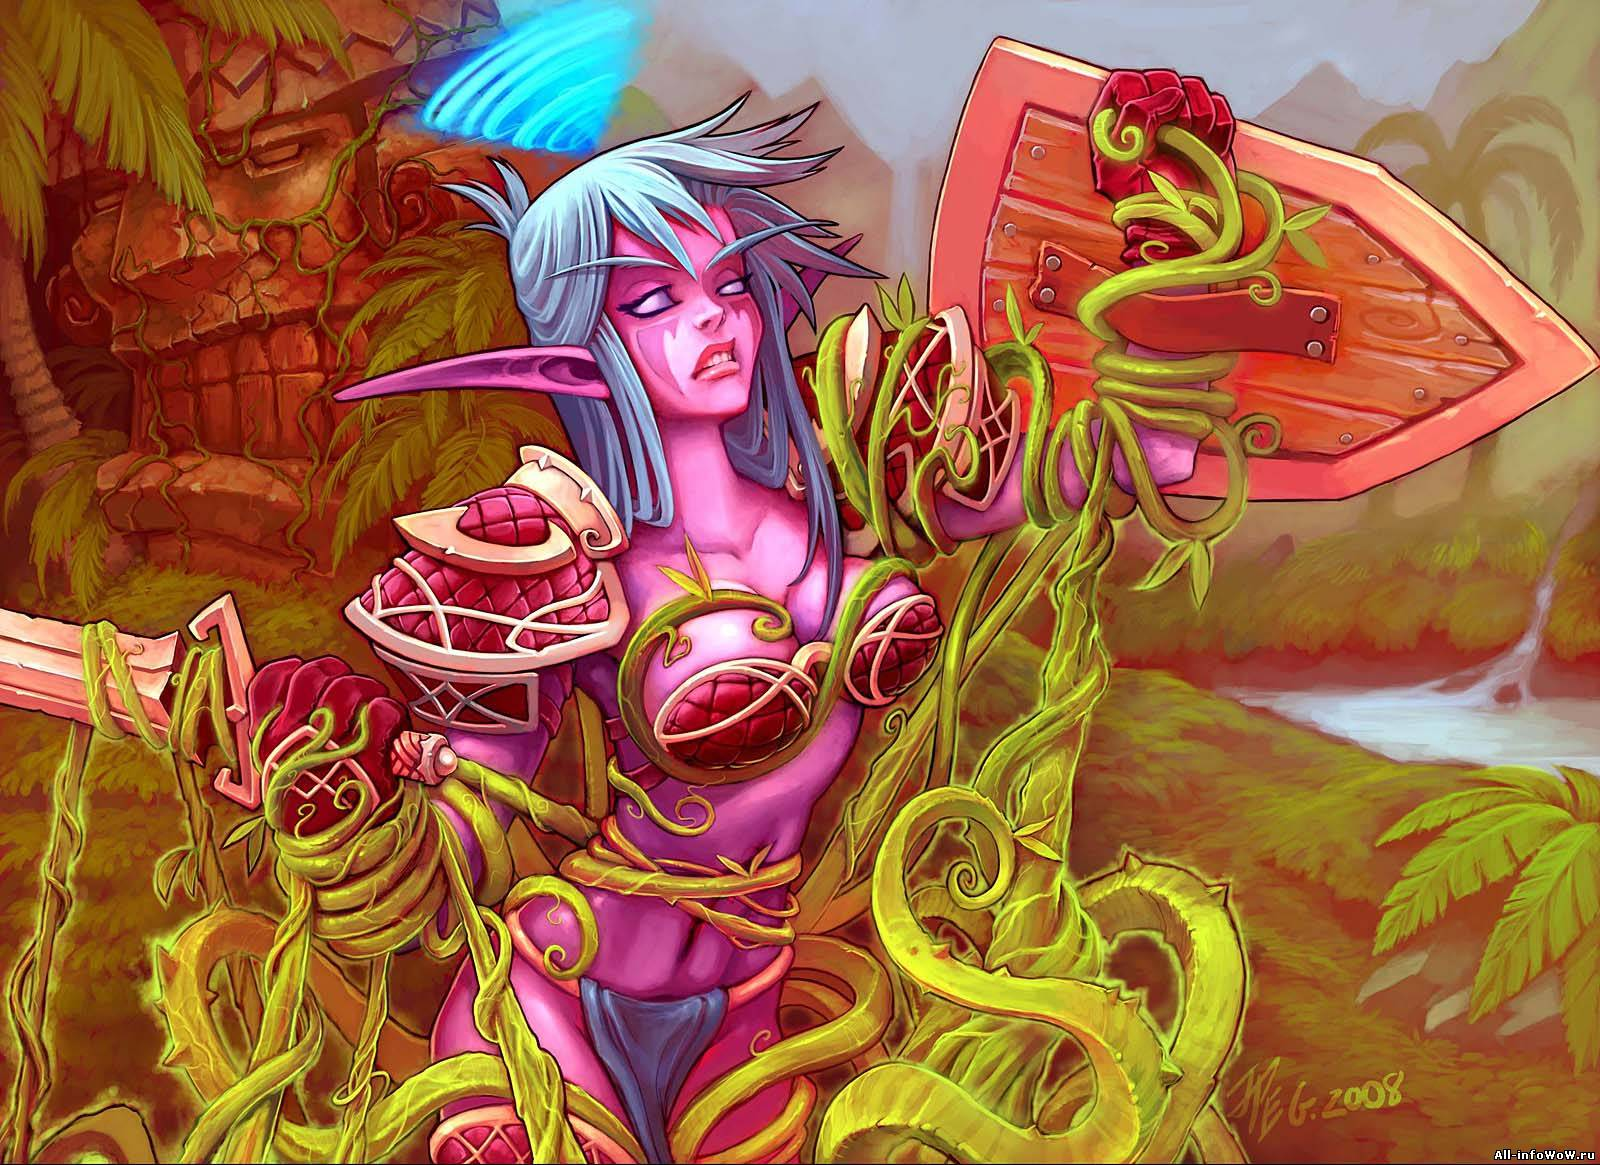 Night elf fuck tentacle sexy images